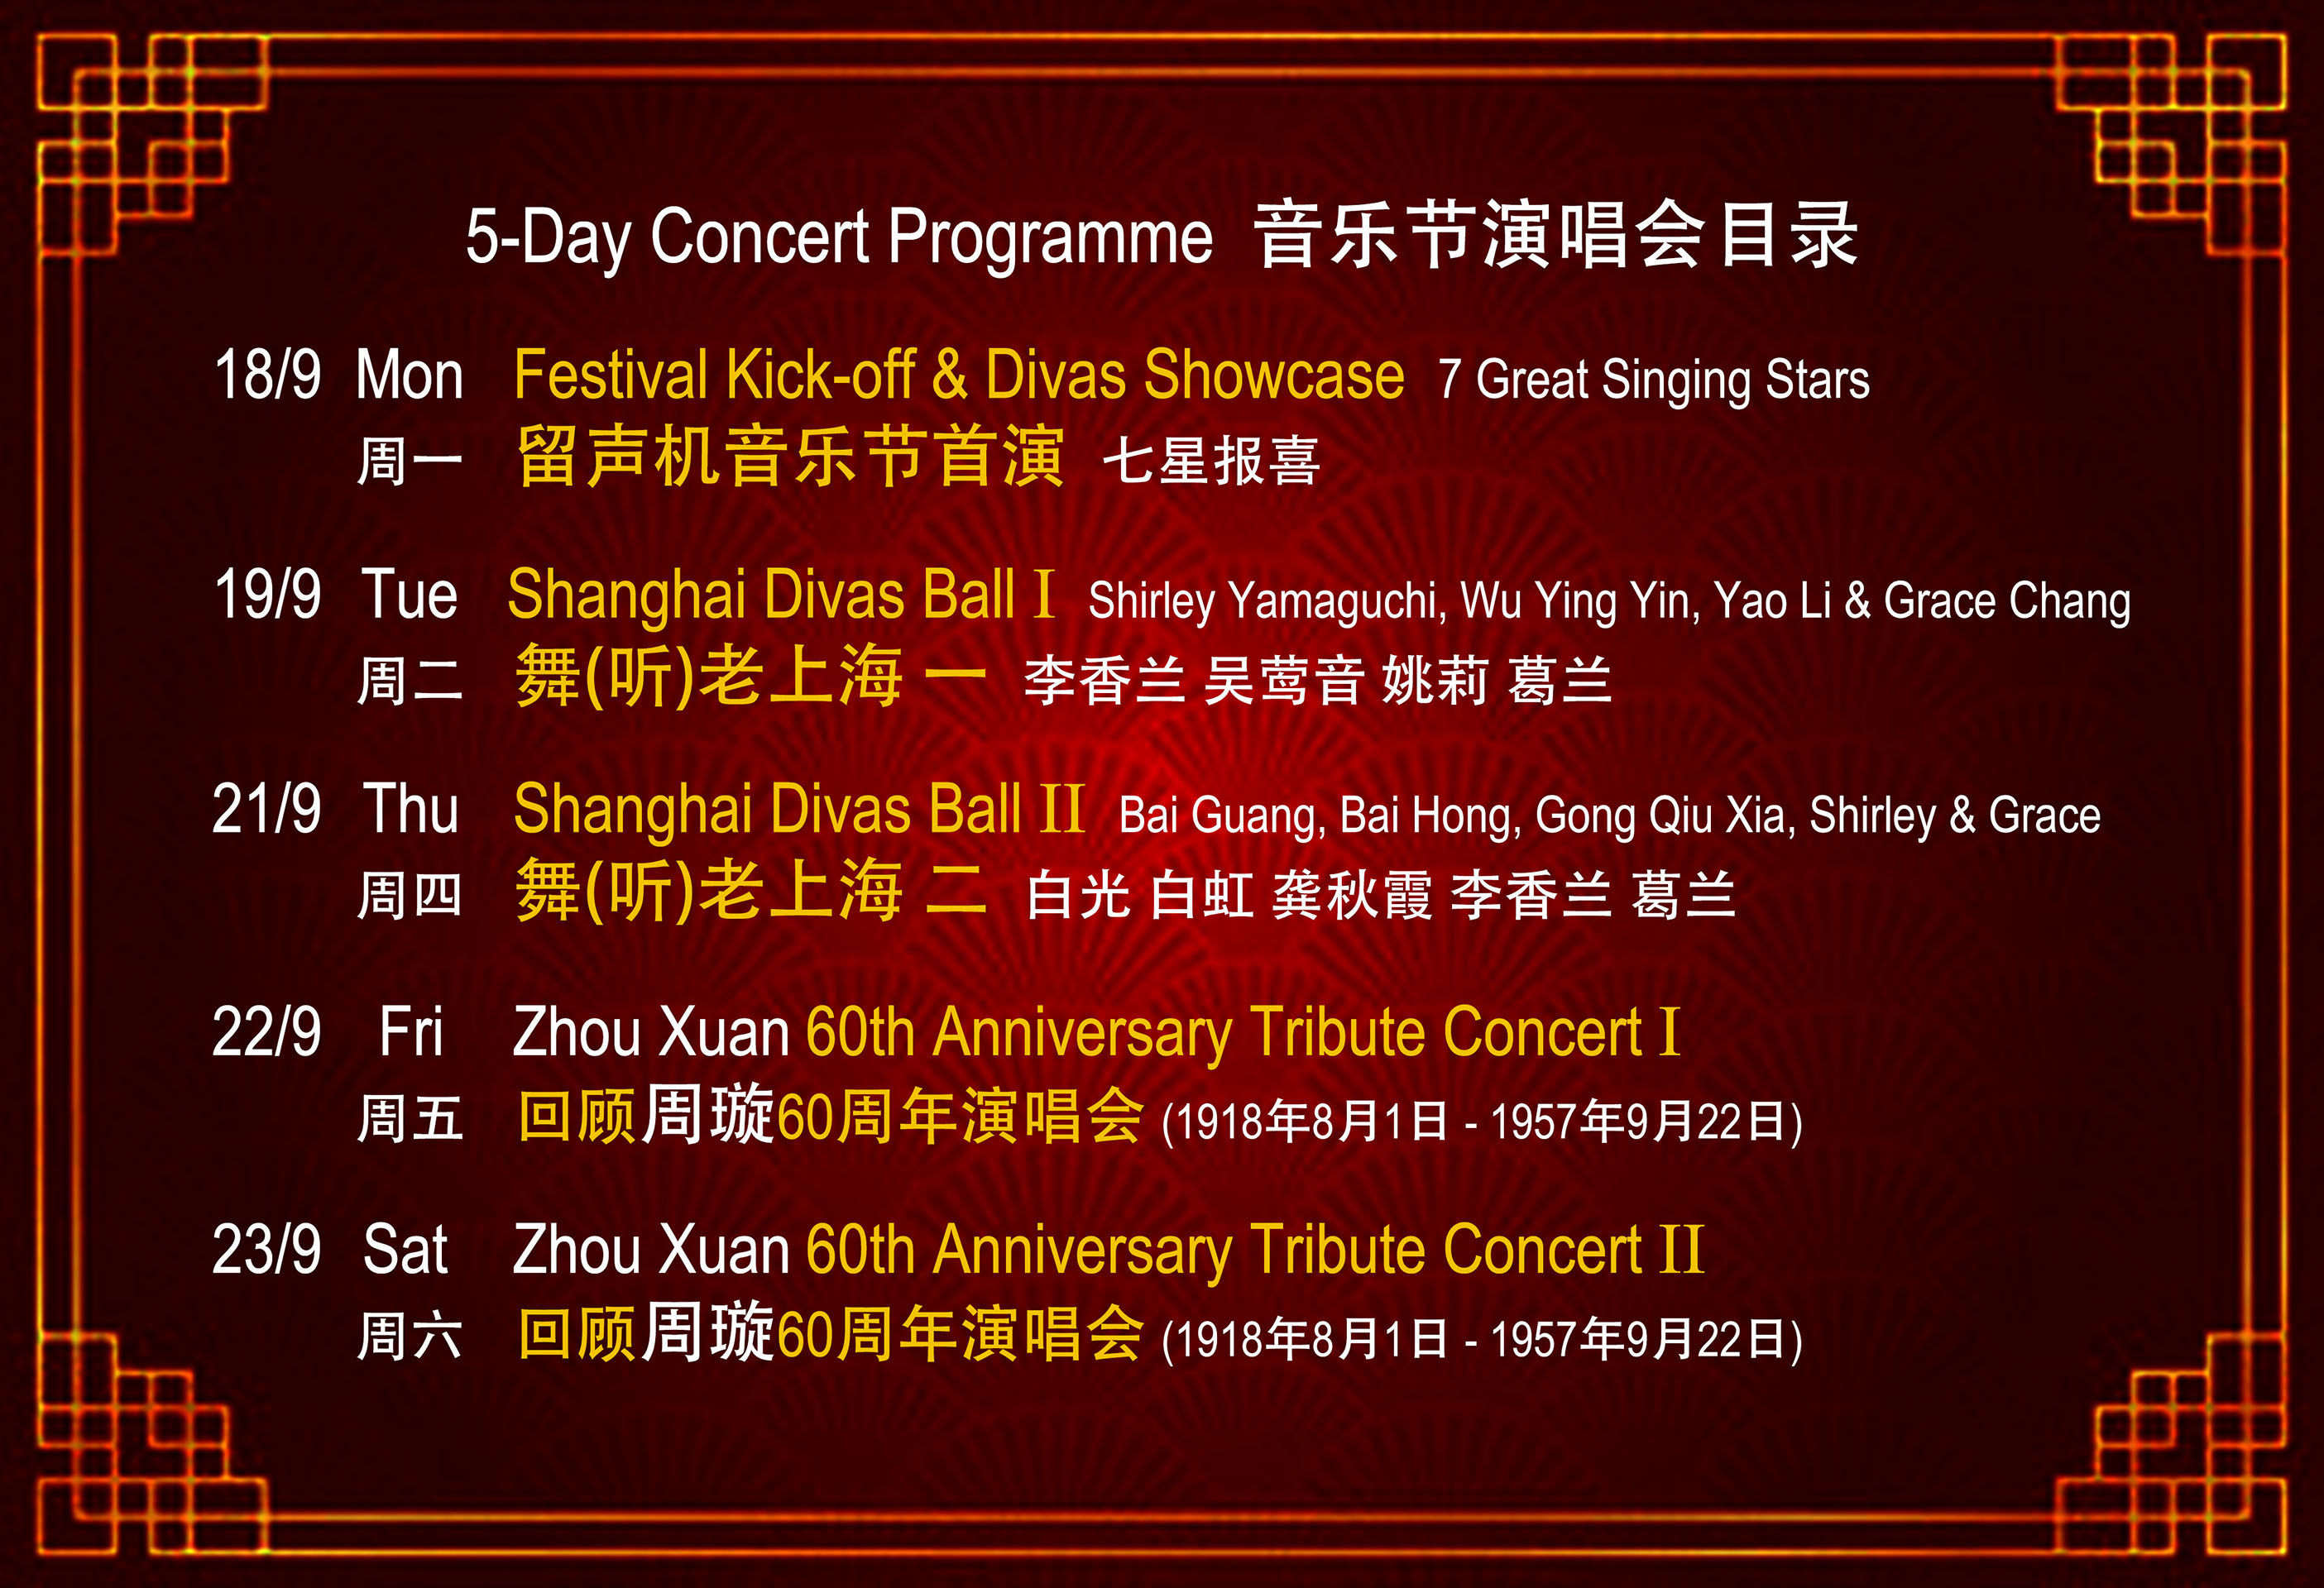 5-Day Concert Programme